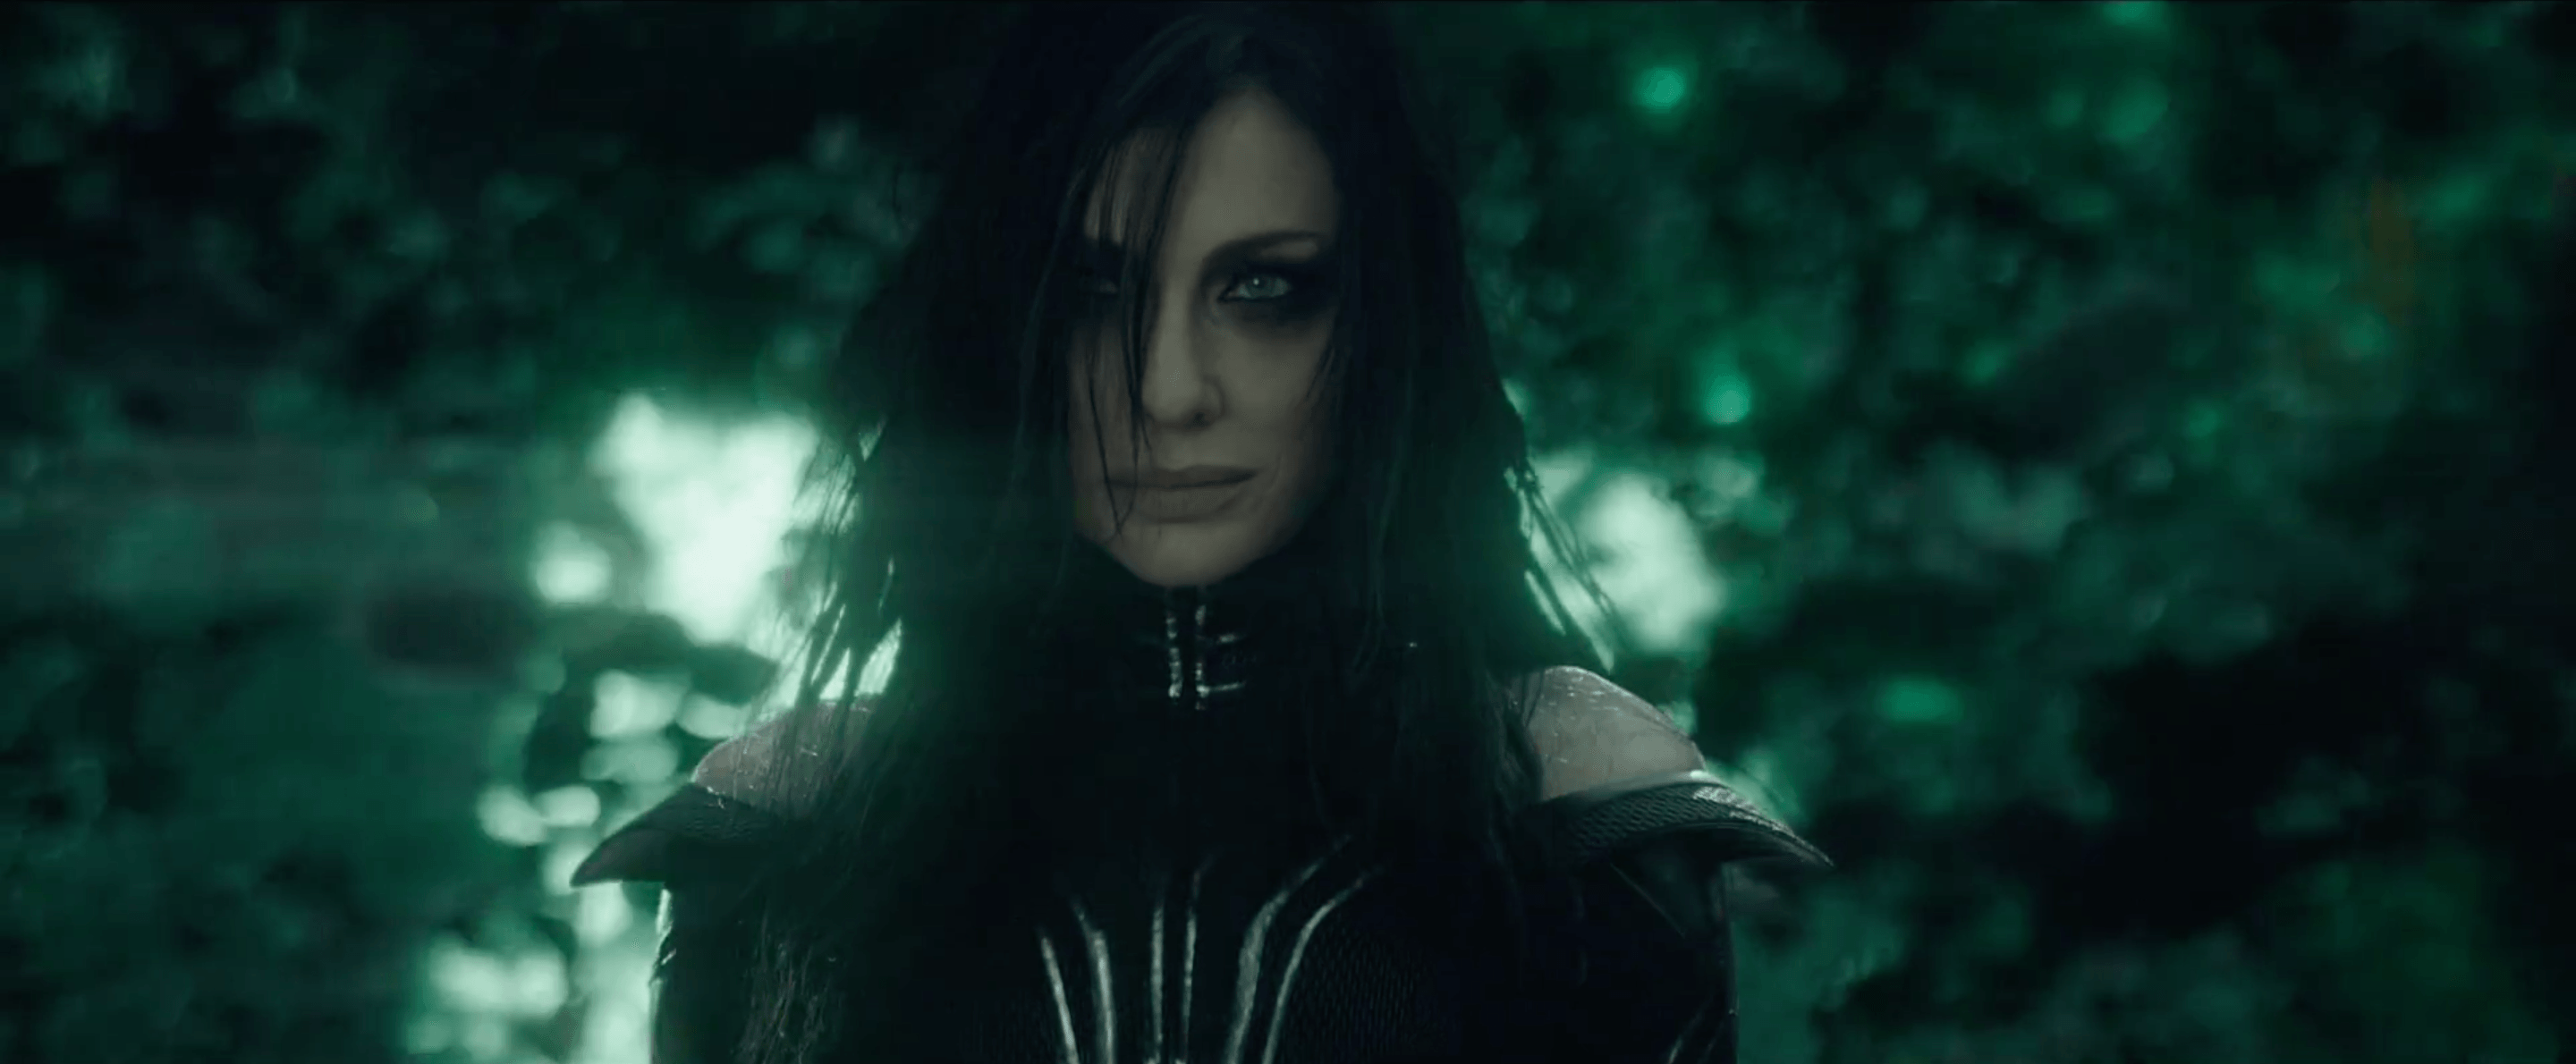 Hela Good - Thor: Ragnarok Featurette